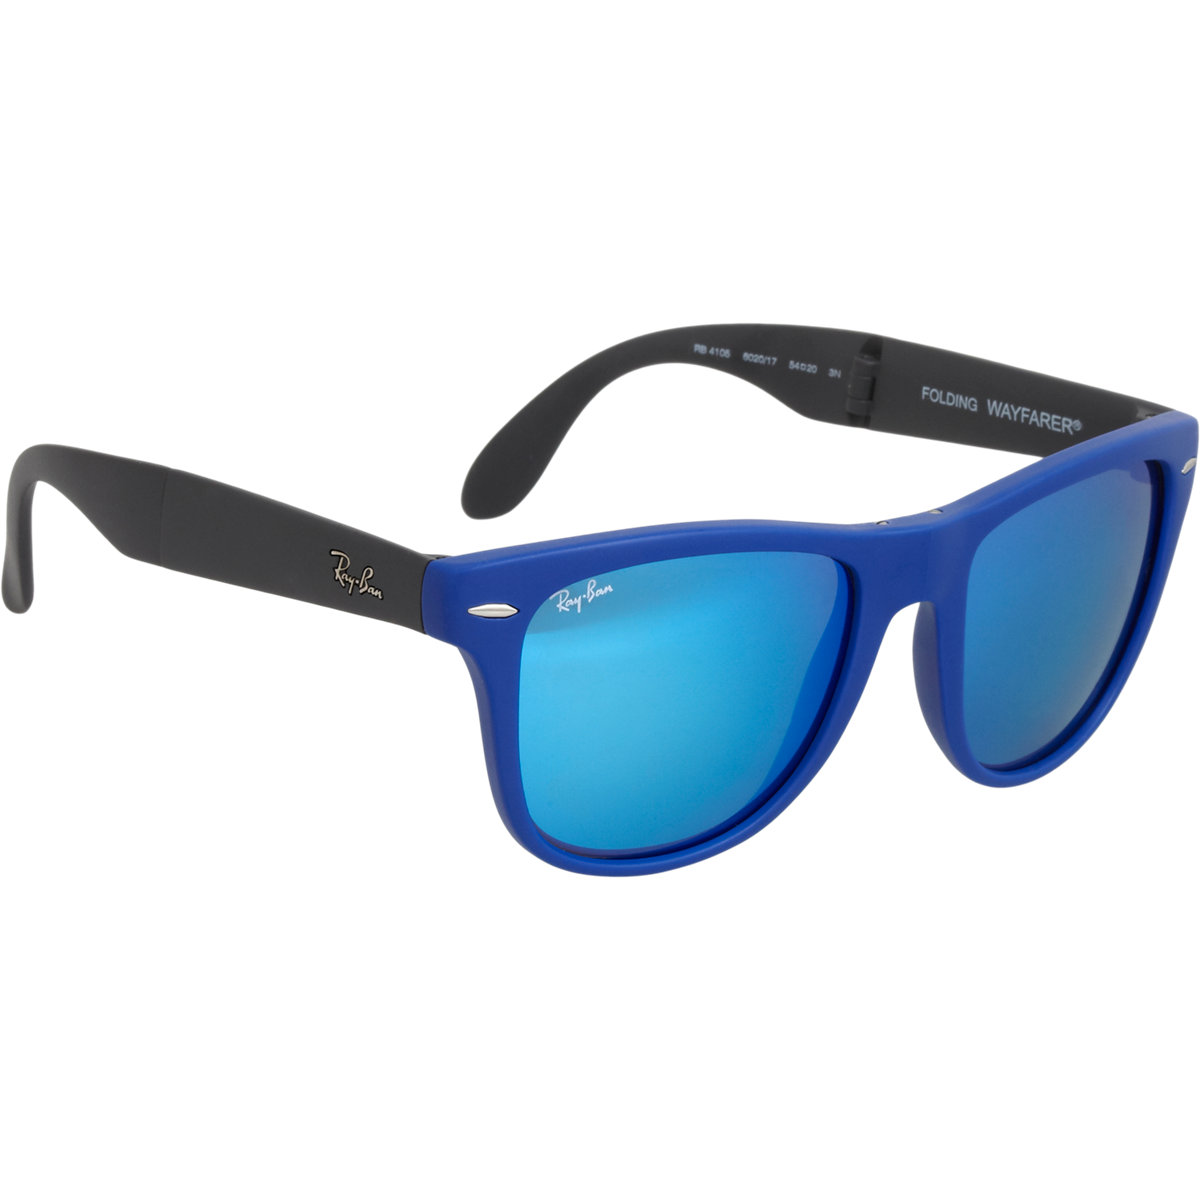 Ray Ban Twotone Mirror Lens Wayfarer Sunglasses In Blue